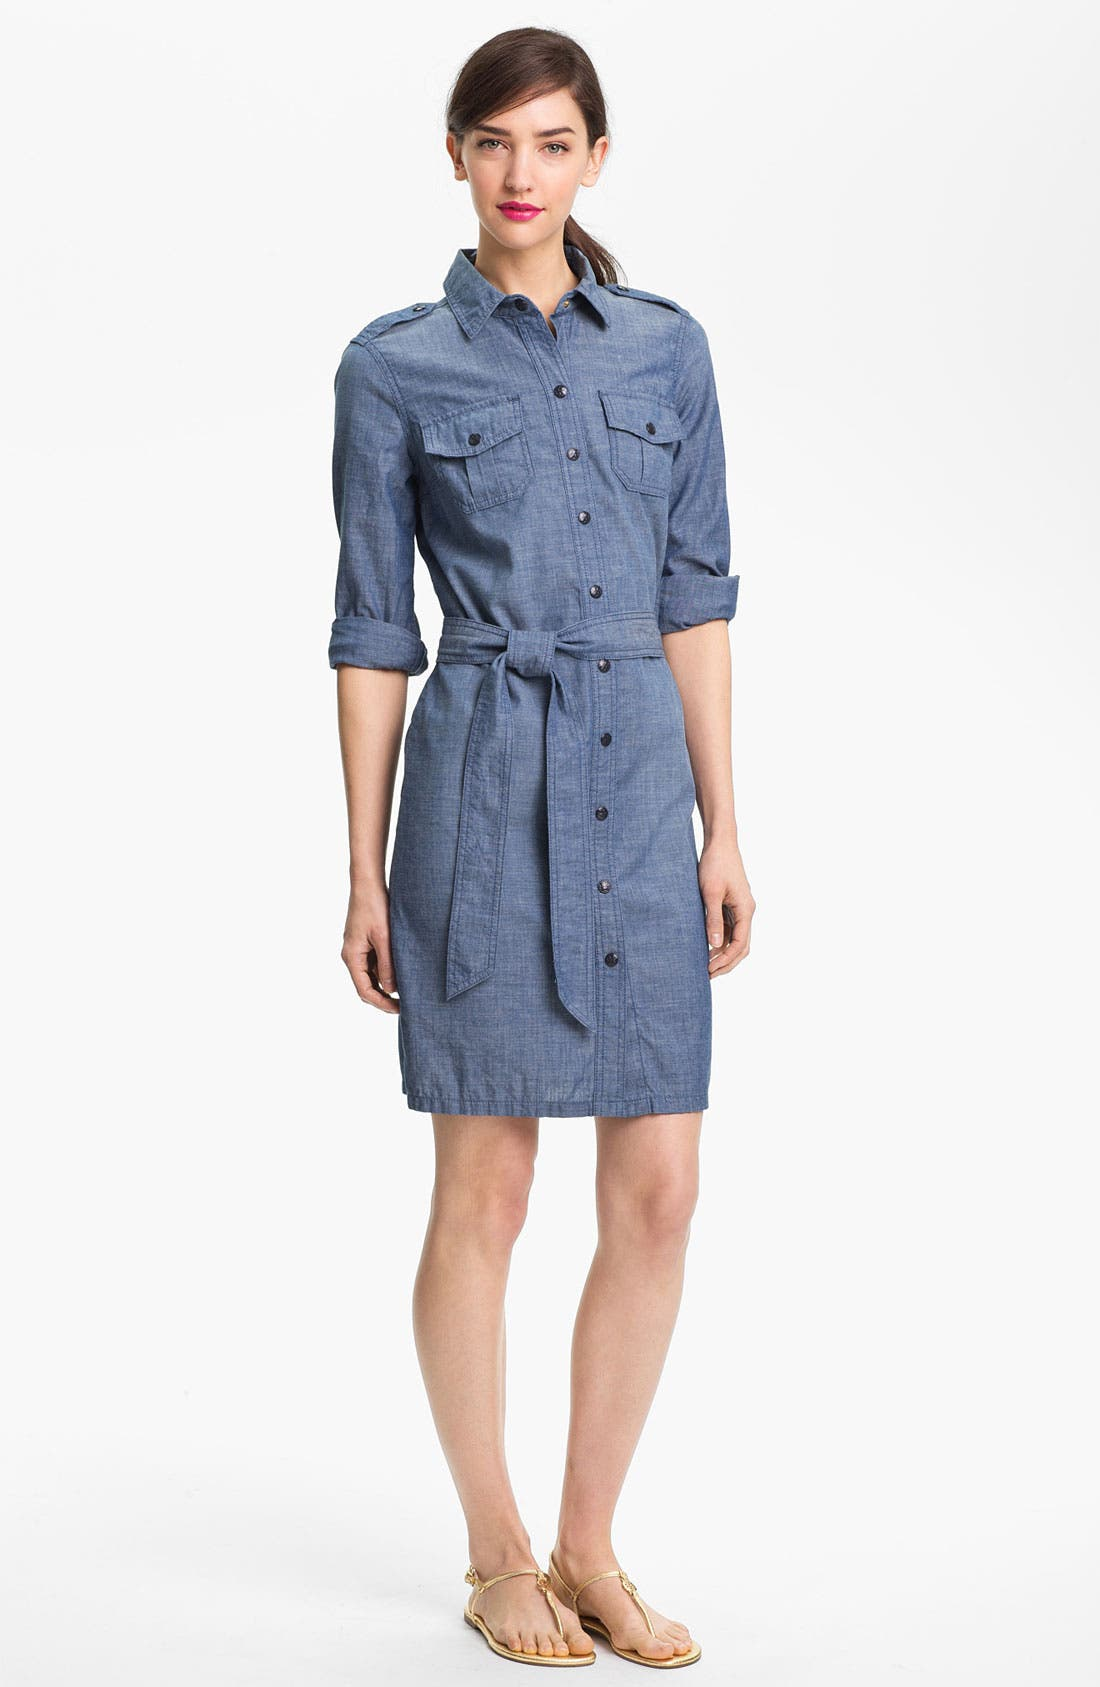 Alternate Image 1 Selected - Tory Burch 'Brigitte' Cotton Shirtdress